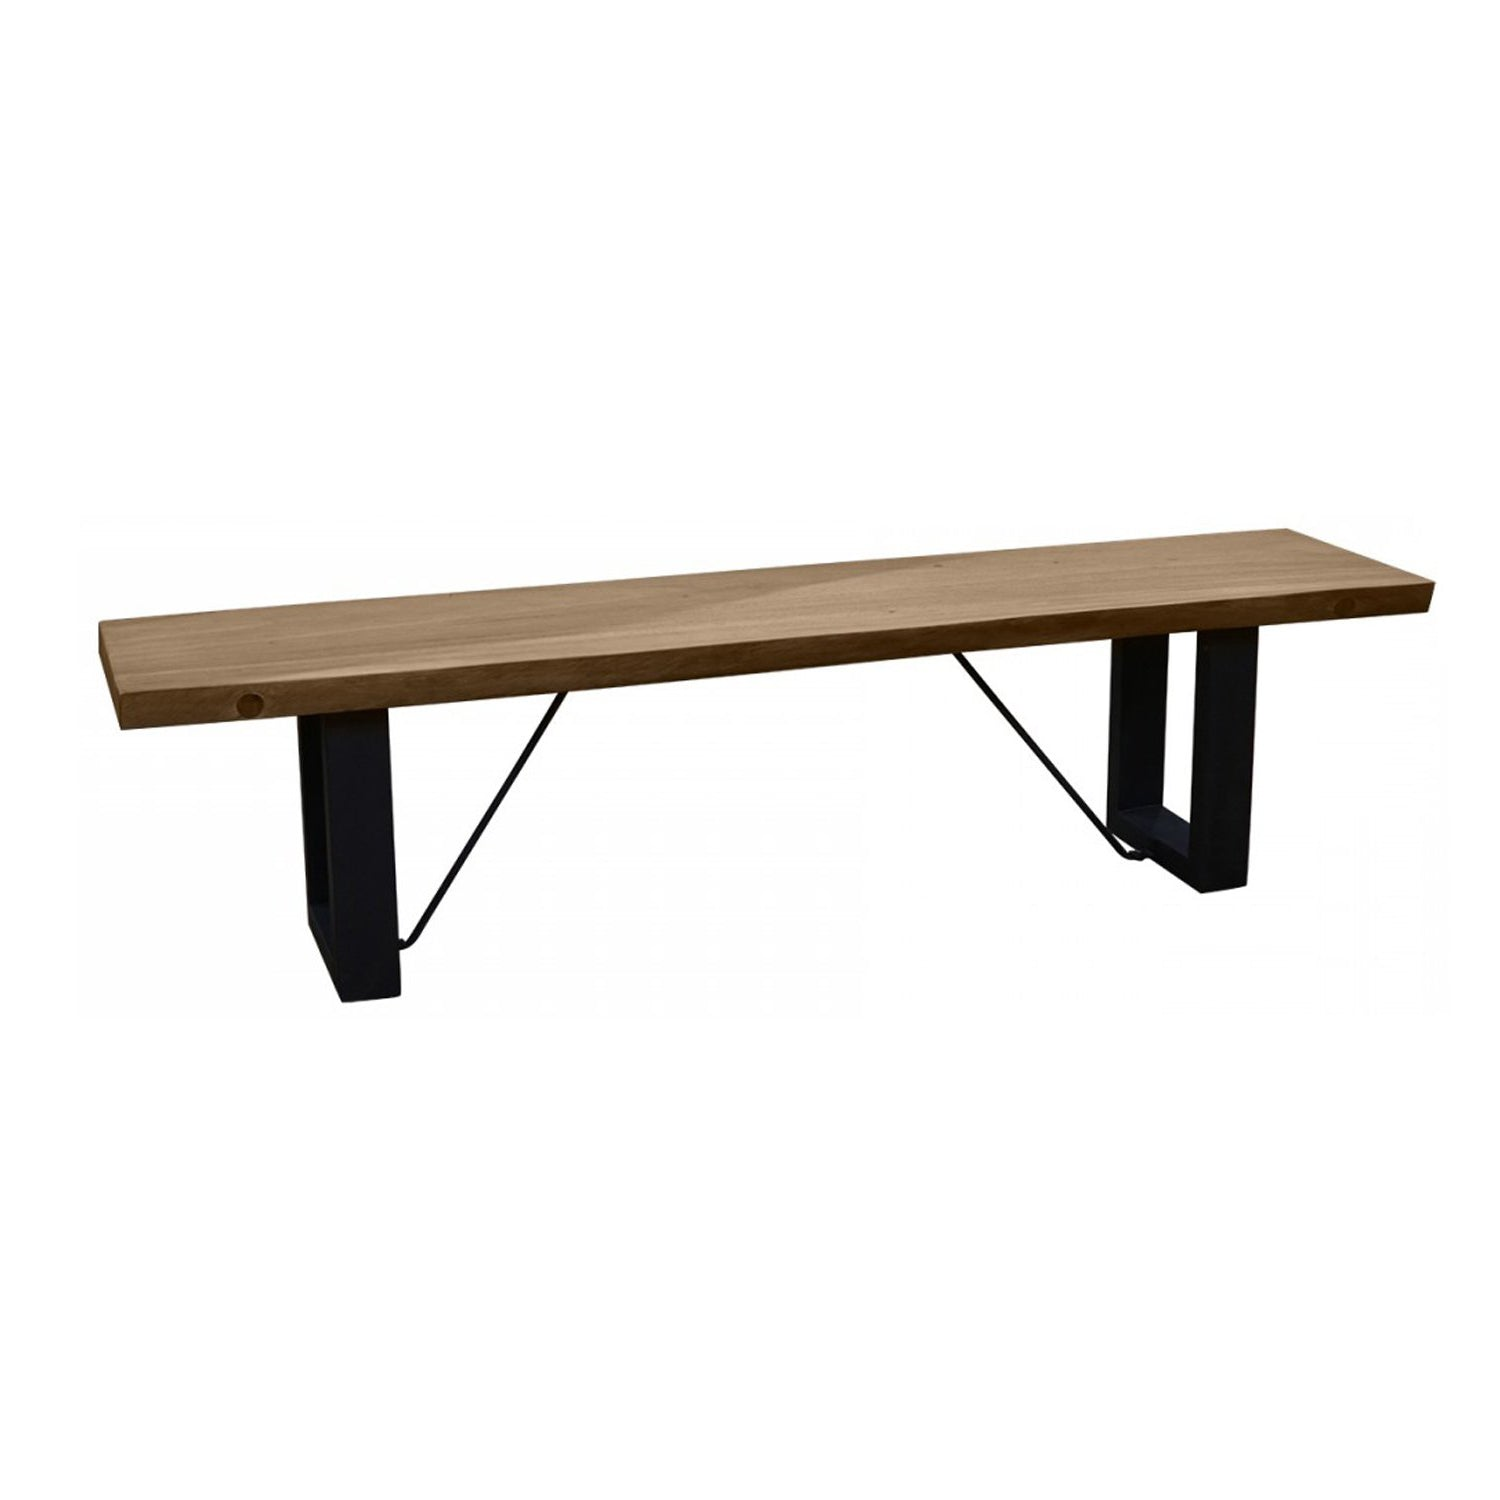 Monks Gate - Bench with Iron Foot - 220cm